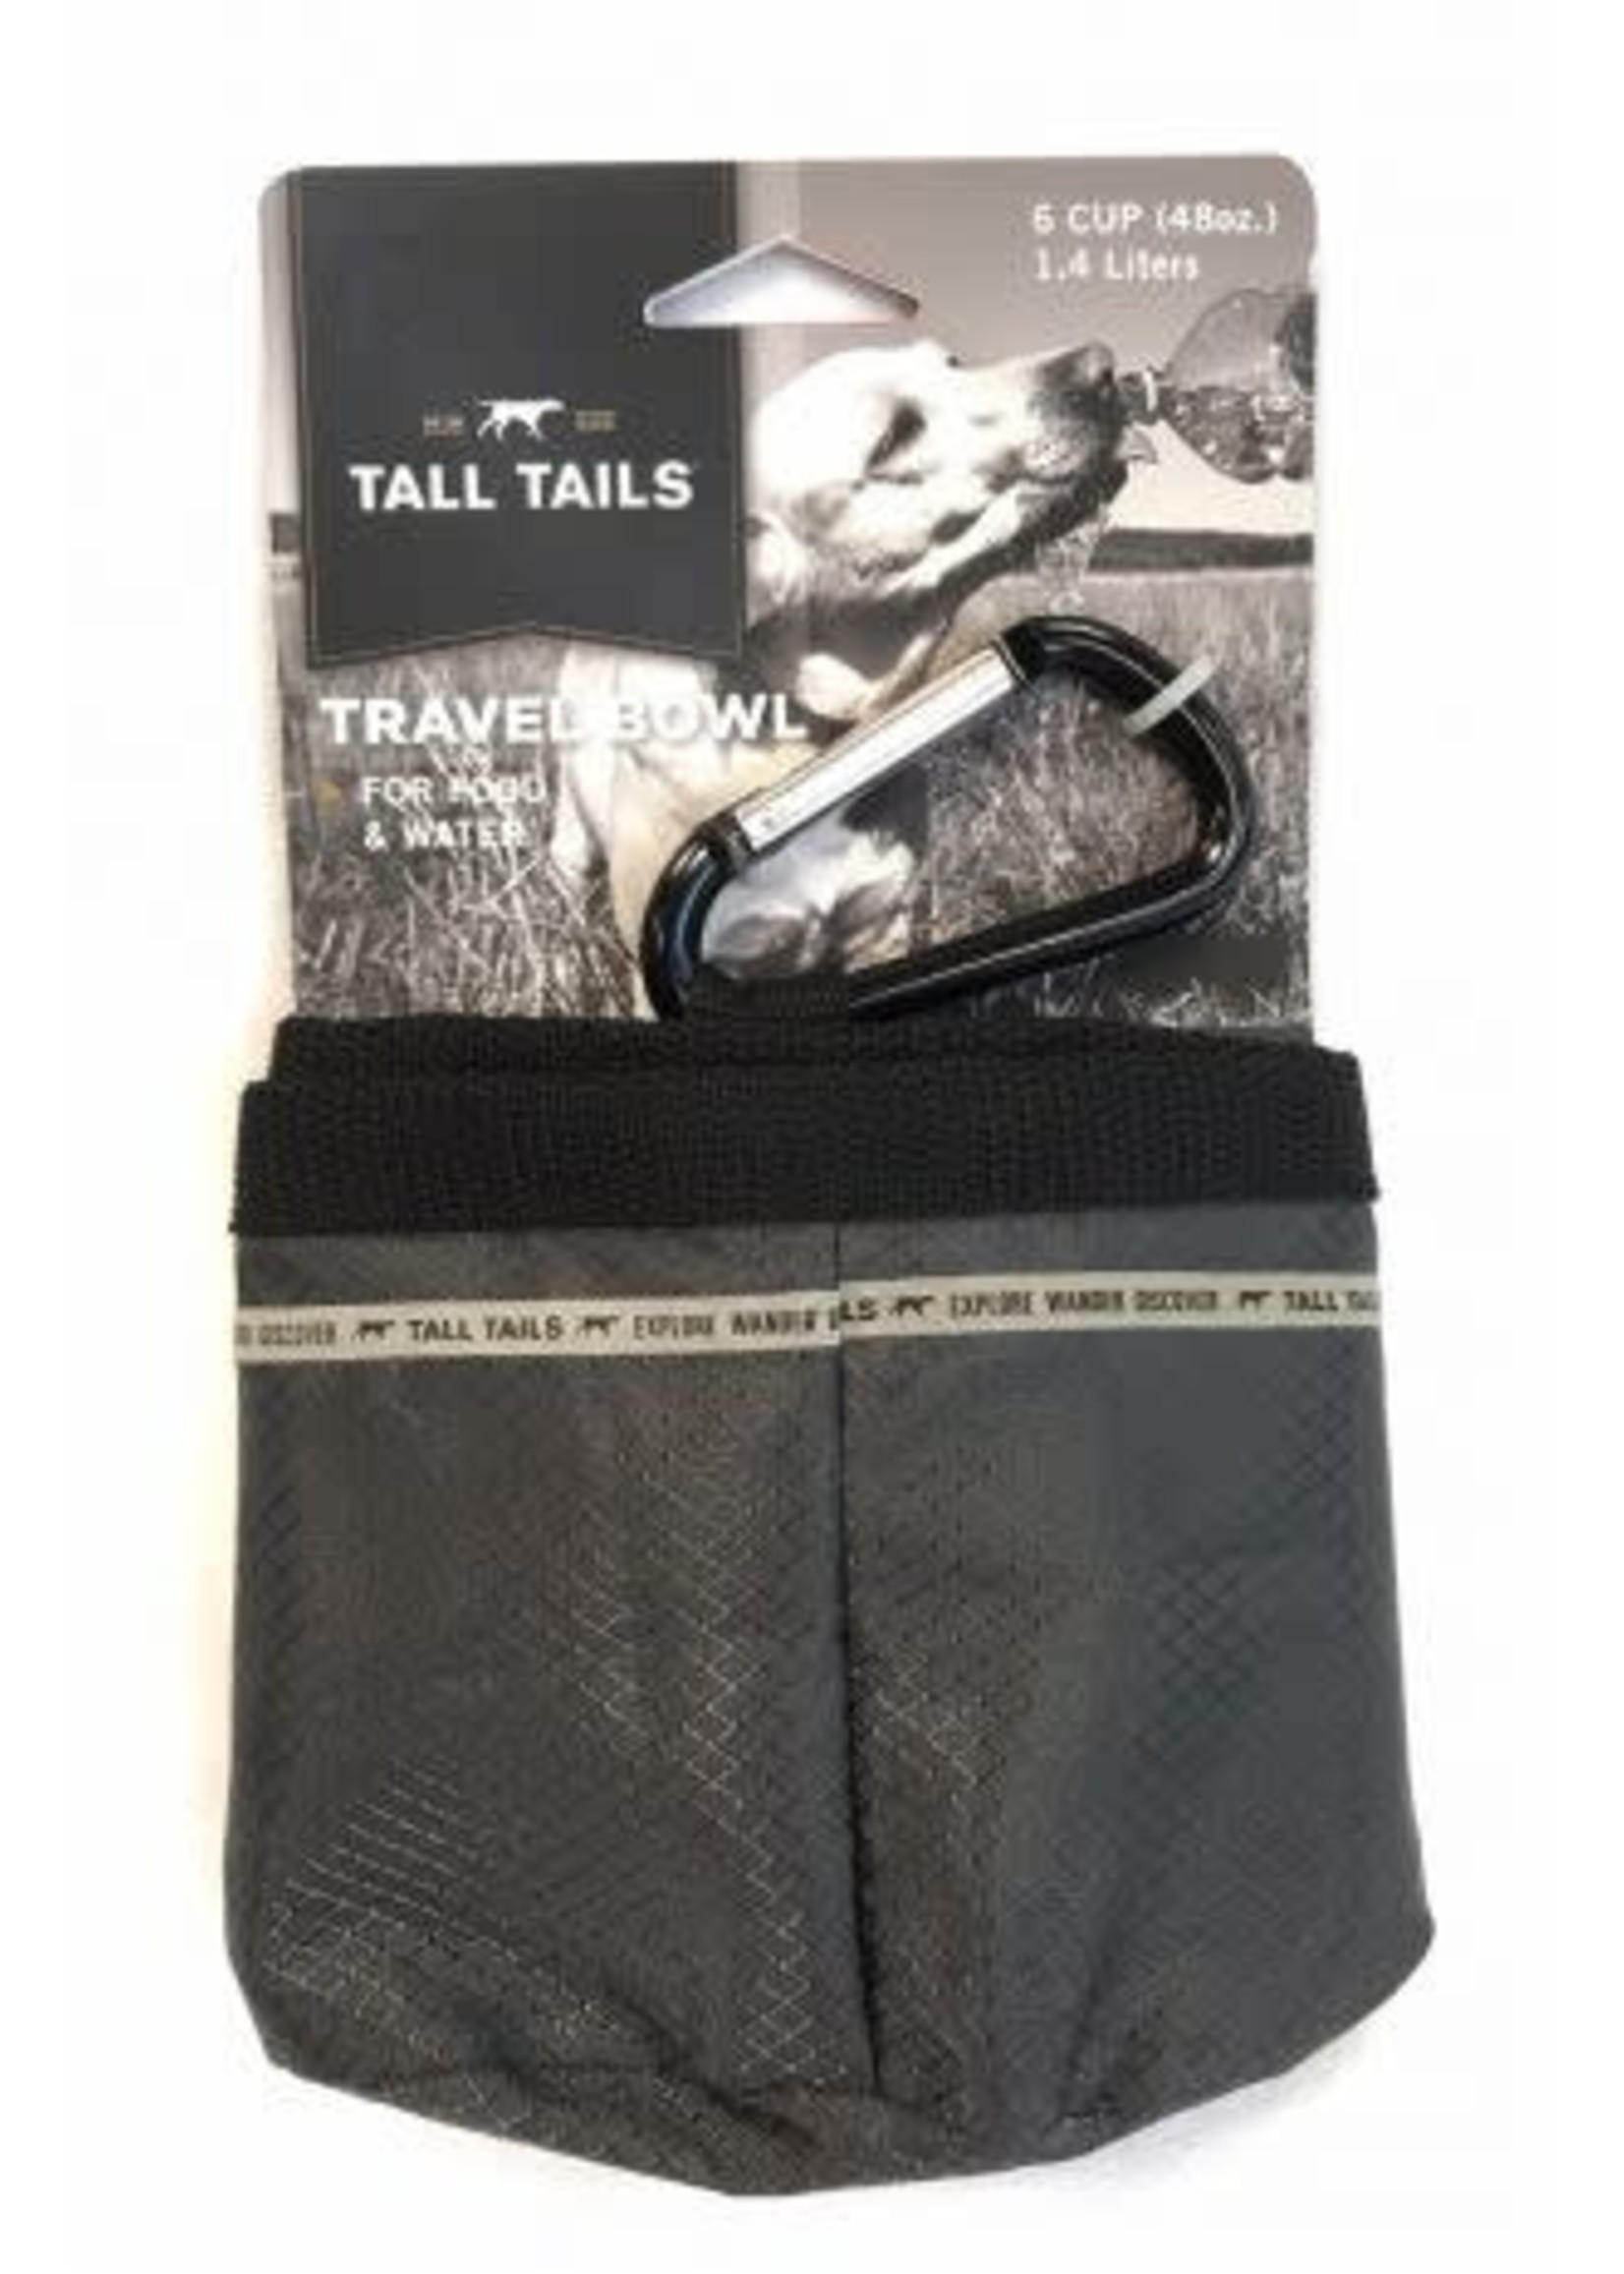 Tall Tails Tall Tails  6 Cup Travel Bowl